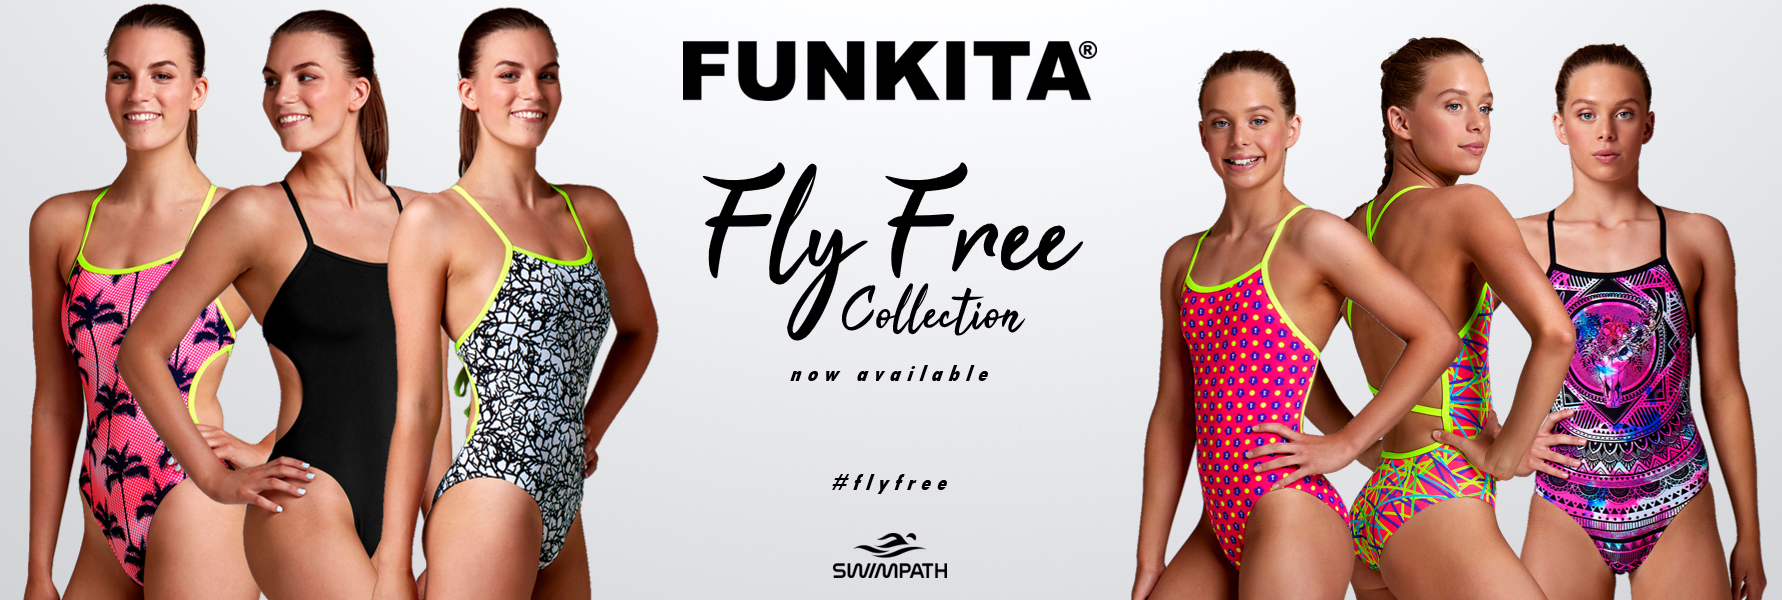 Funkita Fly Free Swimsuit Collection available at SwimPath